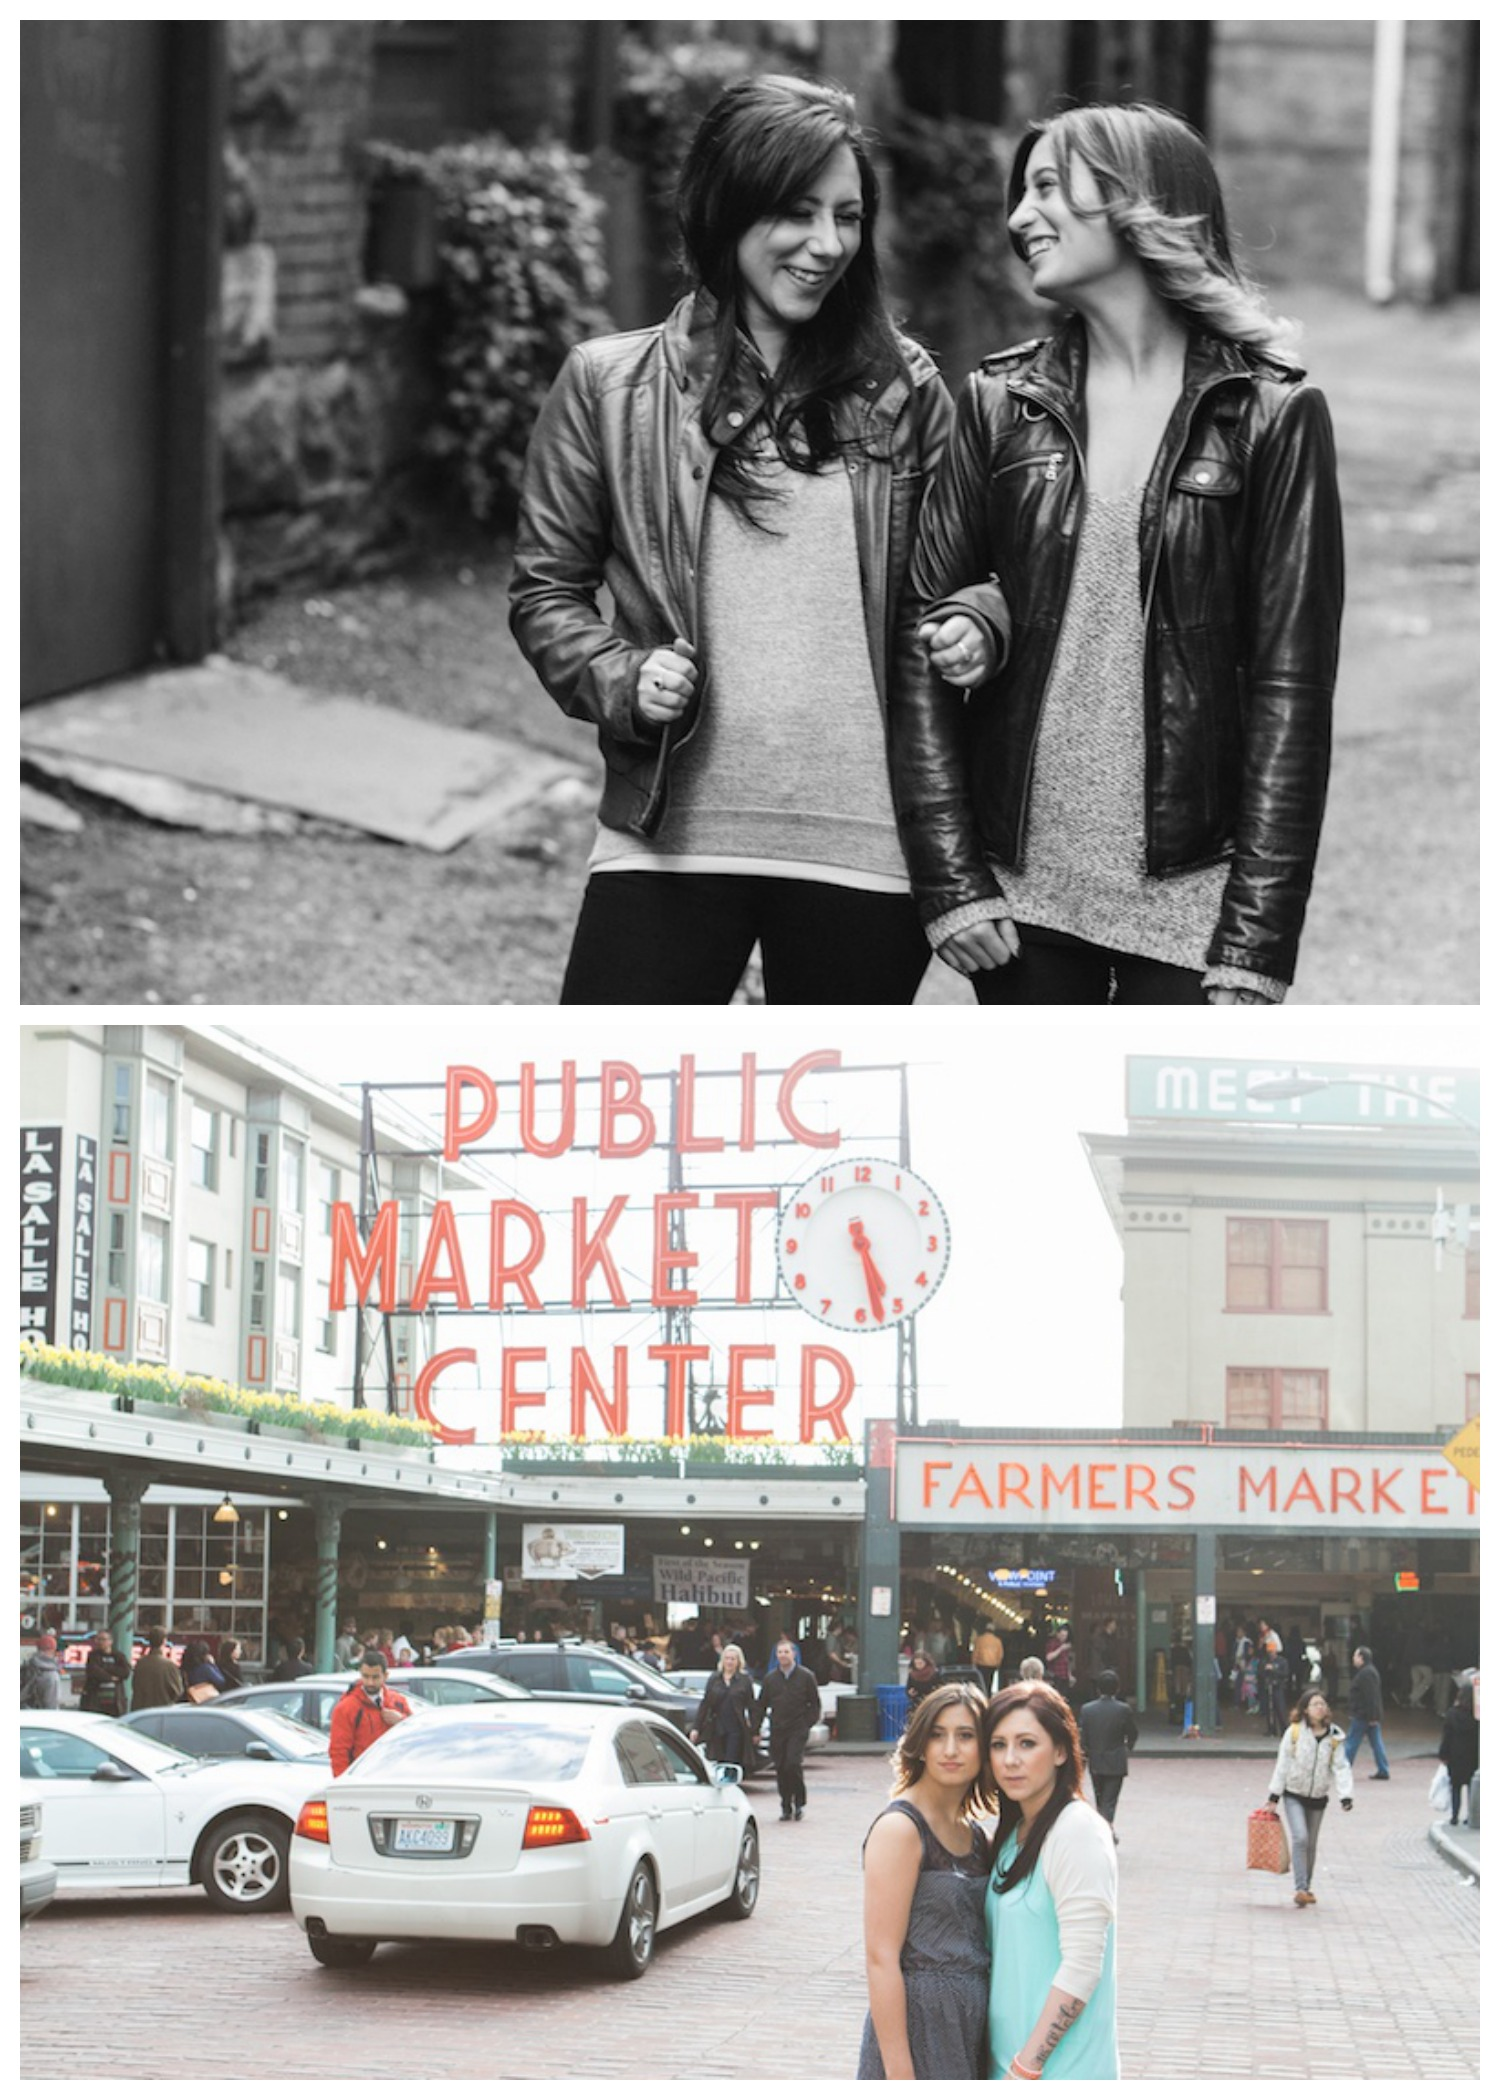 A must-have shot outside the iconic Public Market sign.